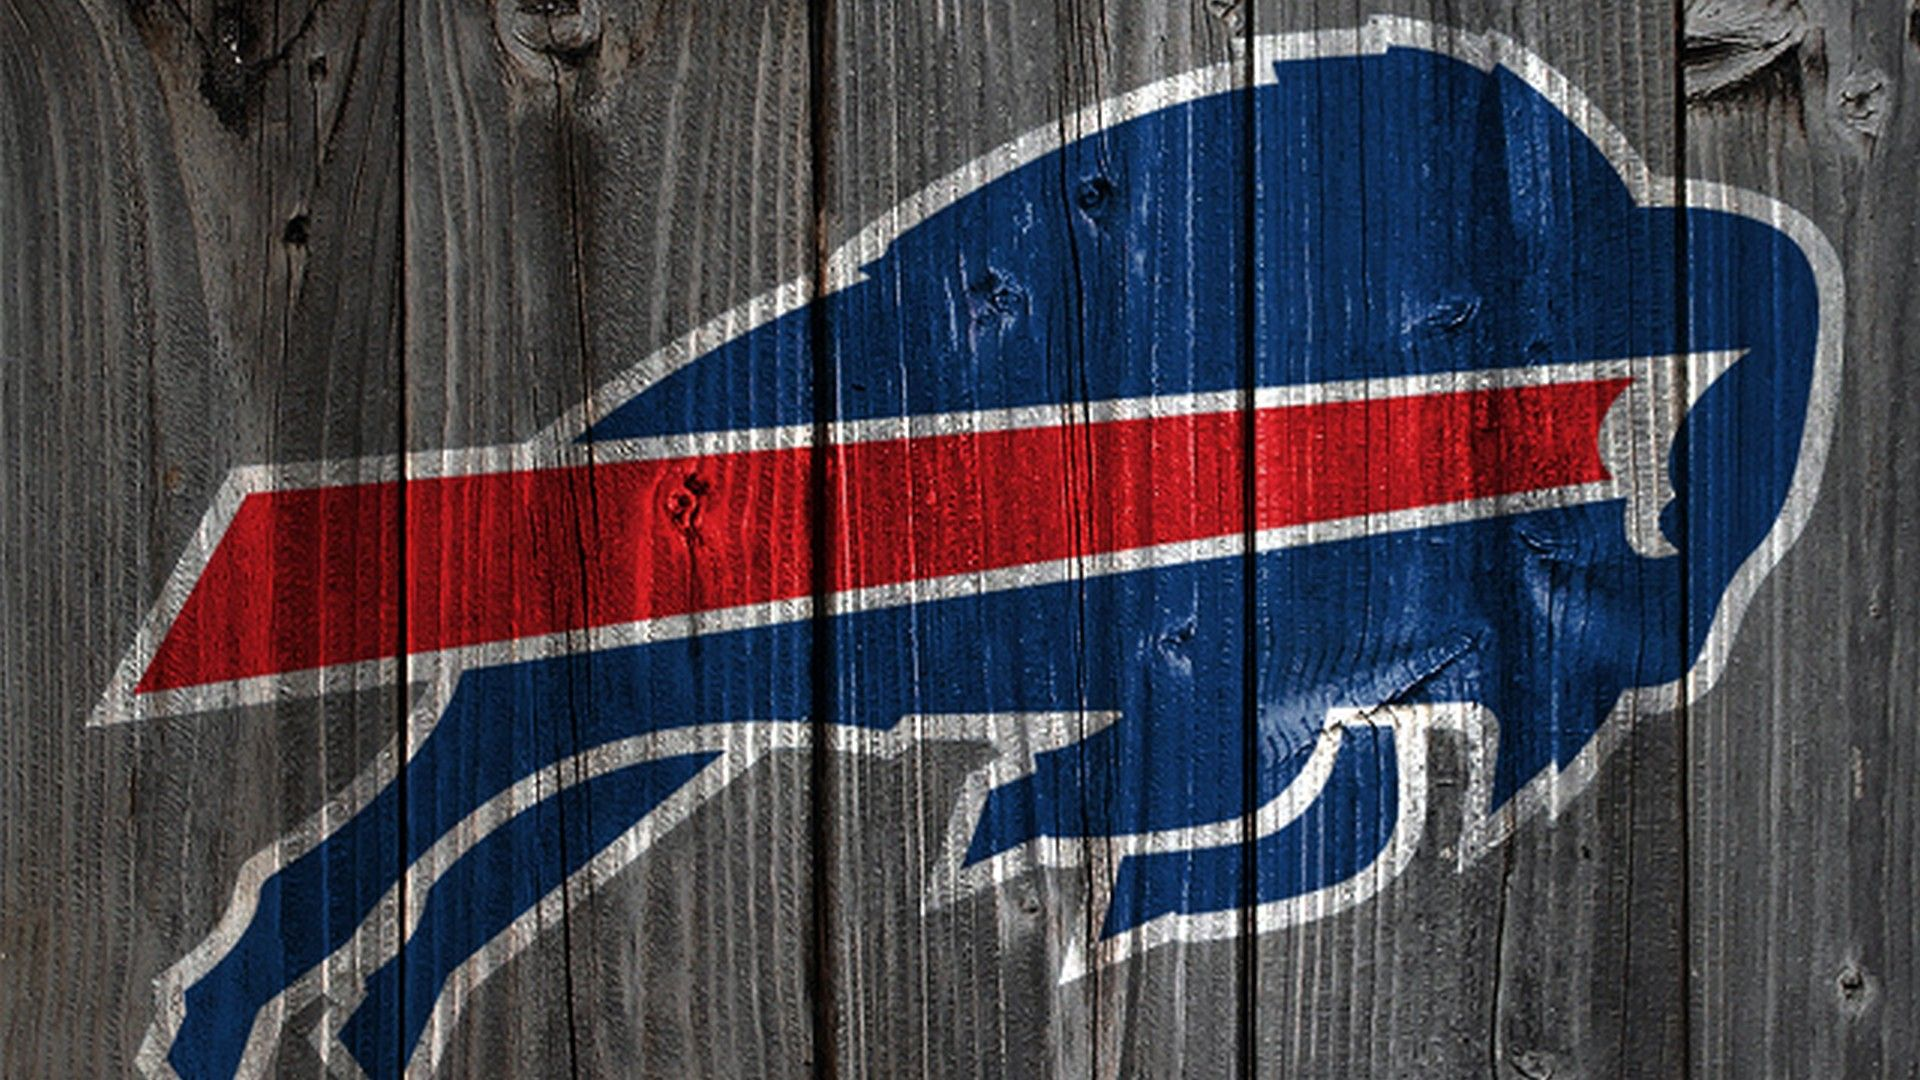 Buffalo Bills Wallpaper Wallpapers Buffalo bills Buffalo 1920x1080